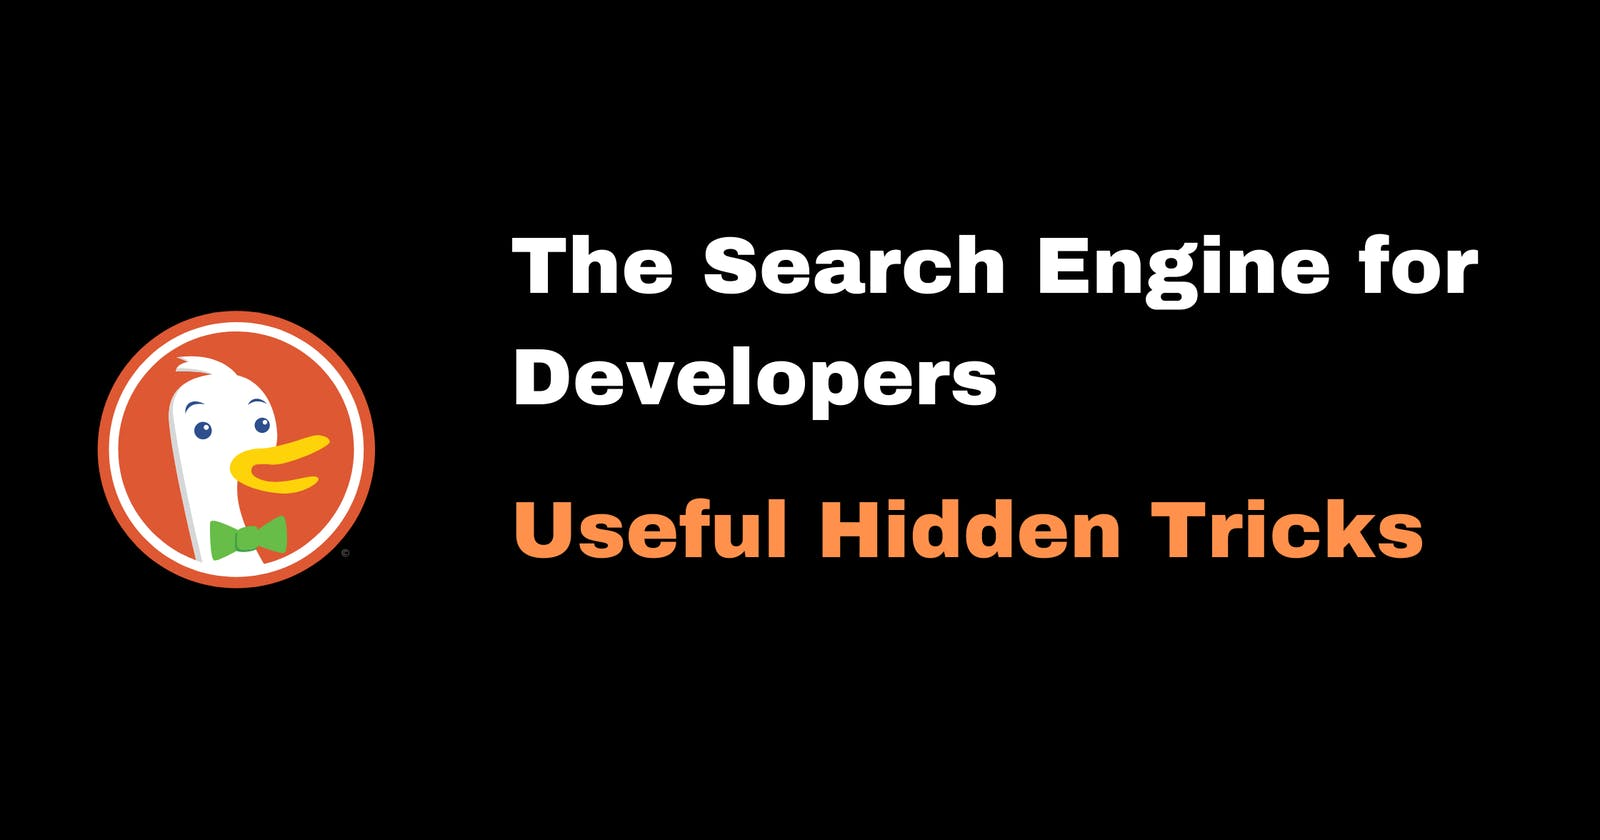 DuckDuckGo - The Search Engine for the Developers